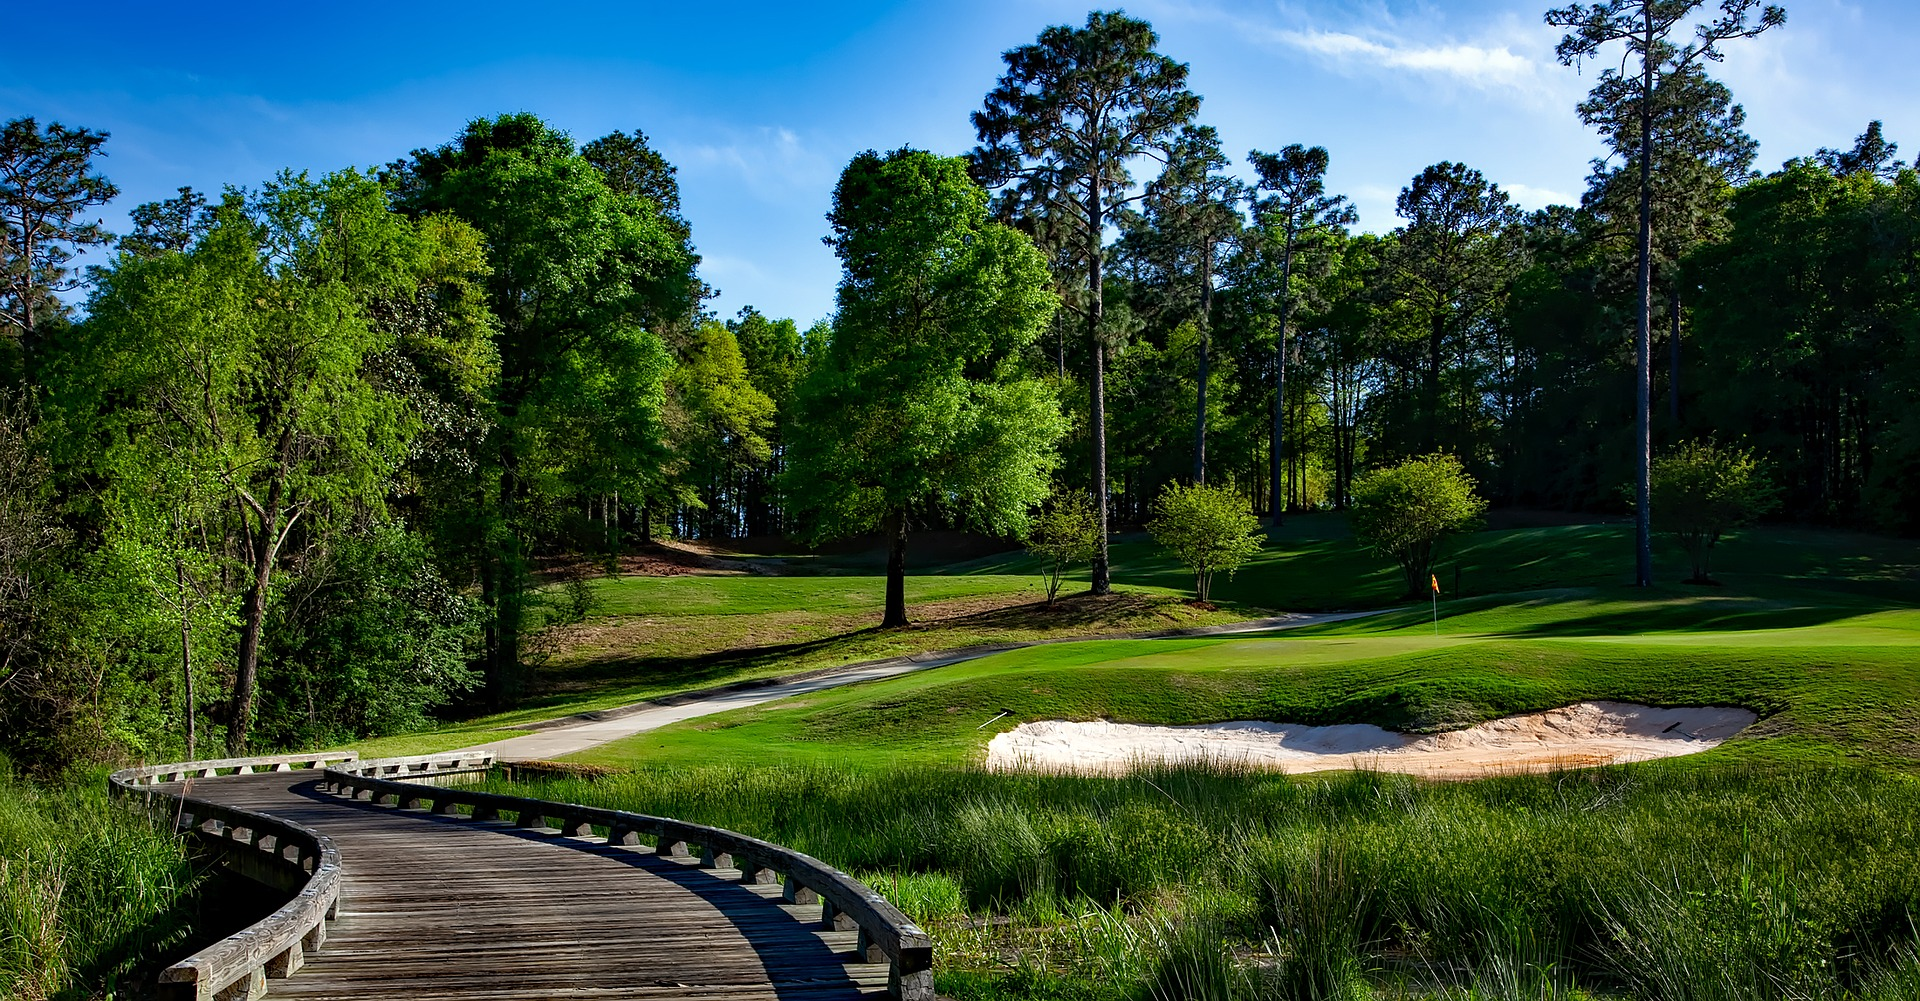 Golf course accessible with wooden walkway.